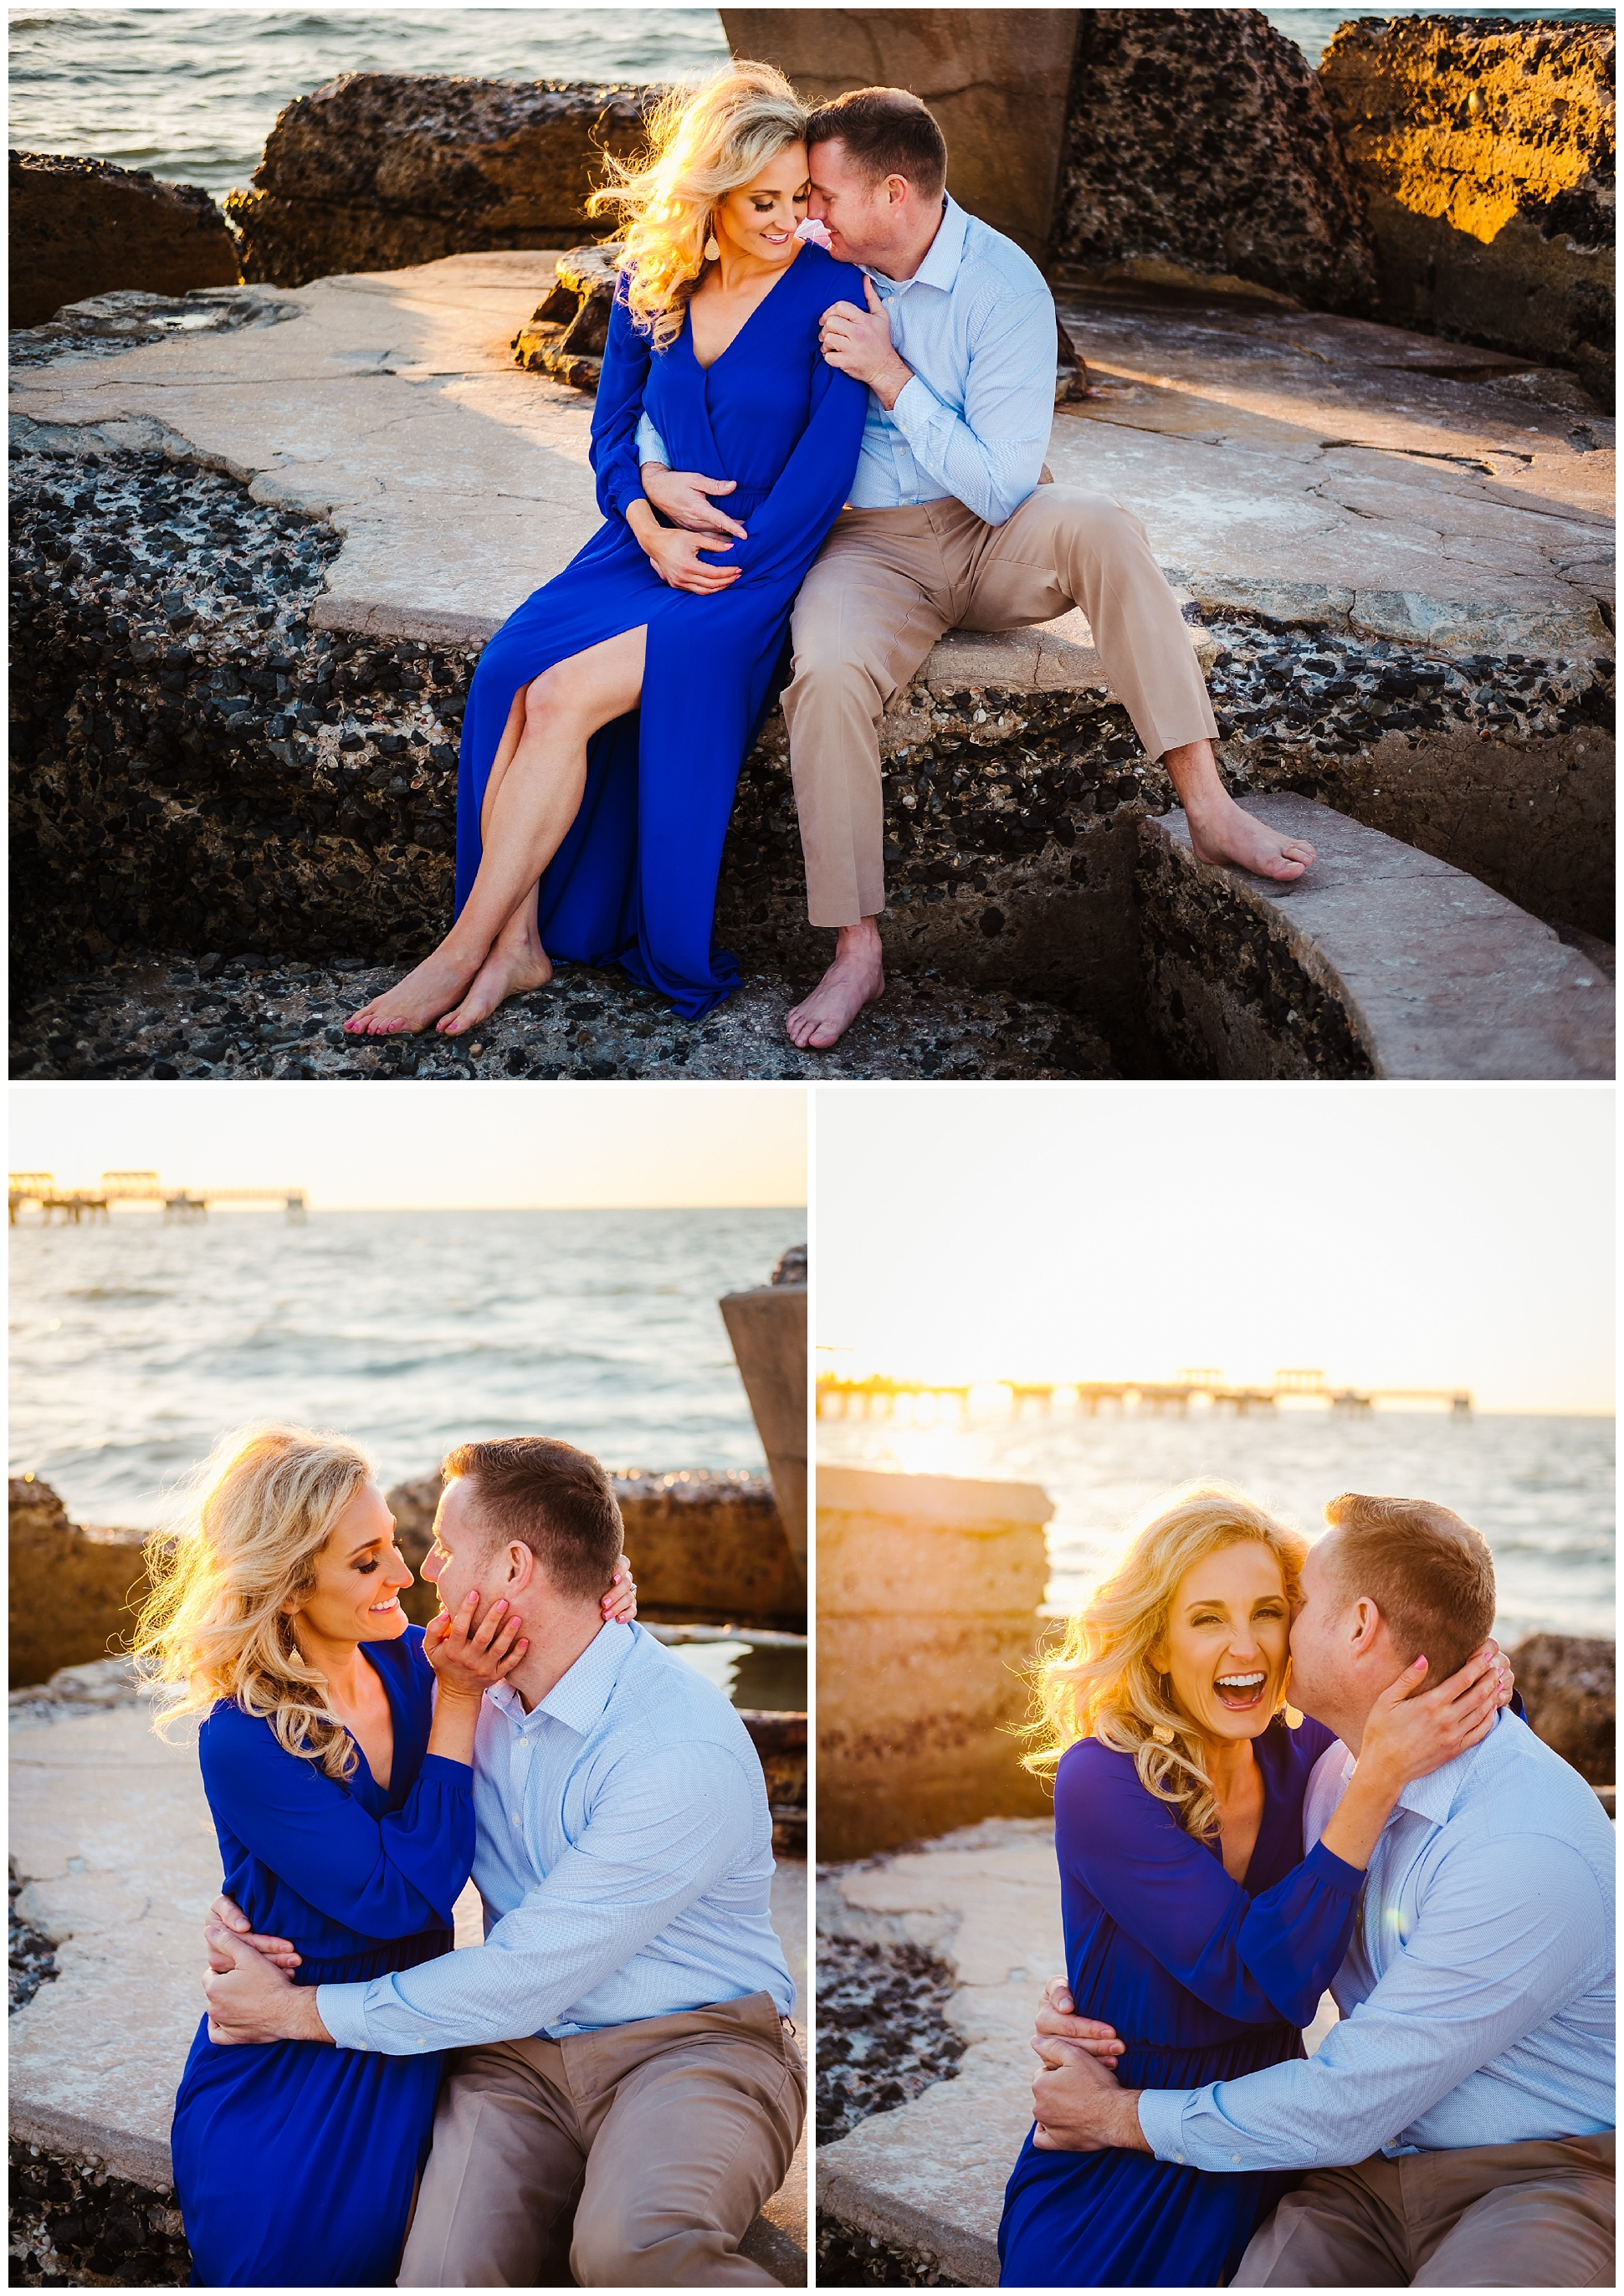 tampa-engagement-photographer-fort-desoto-ruins-sunset-sophisticated_0022.jpg